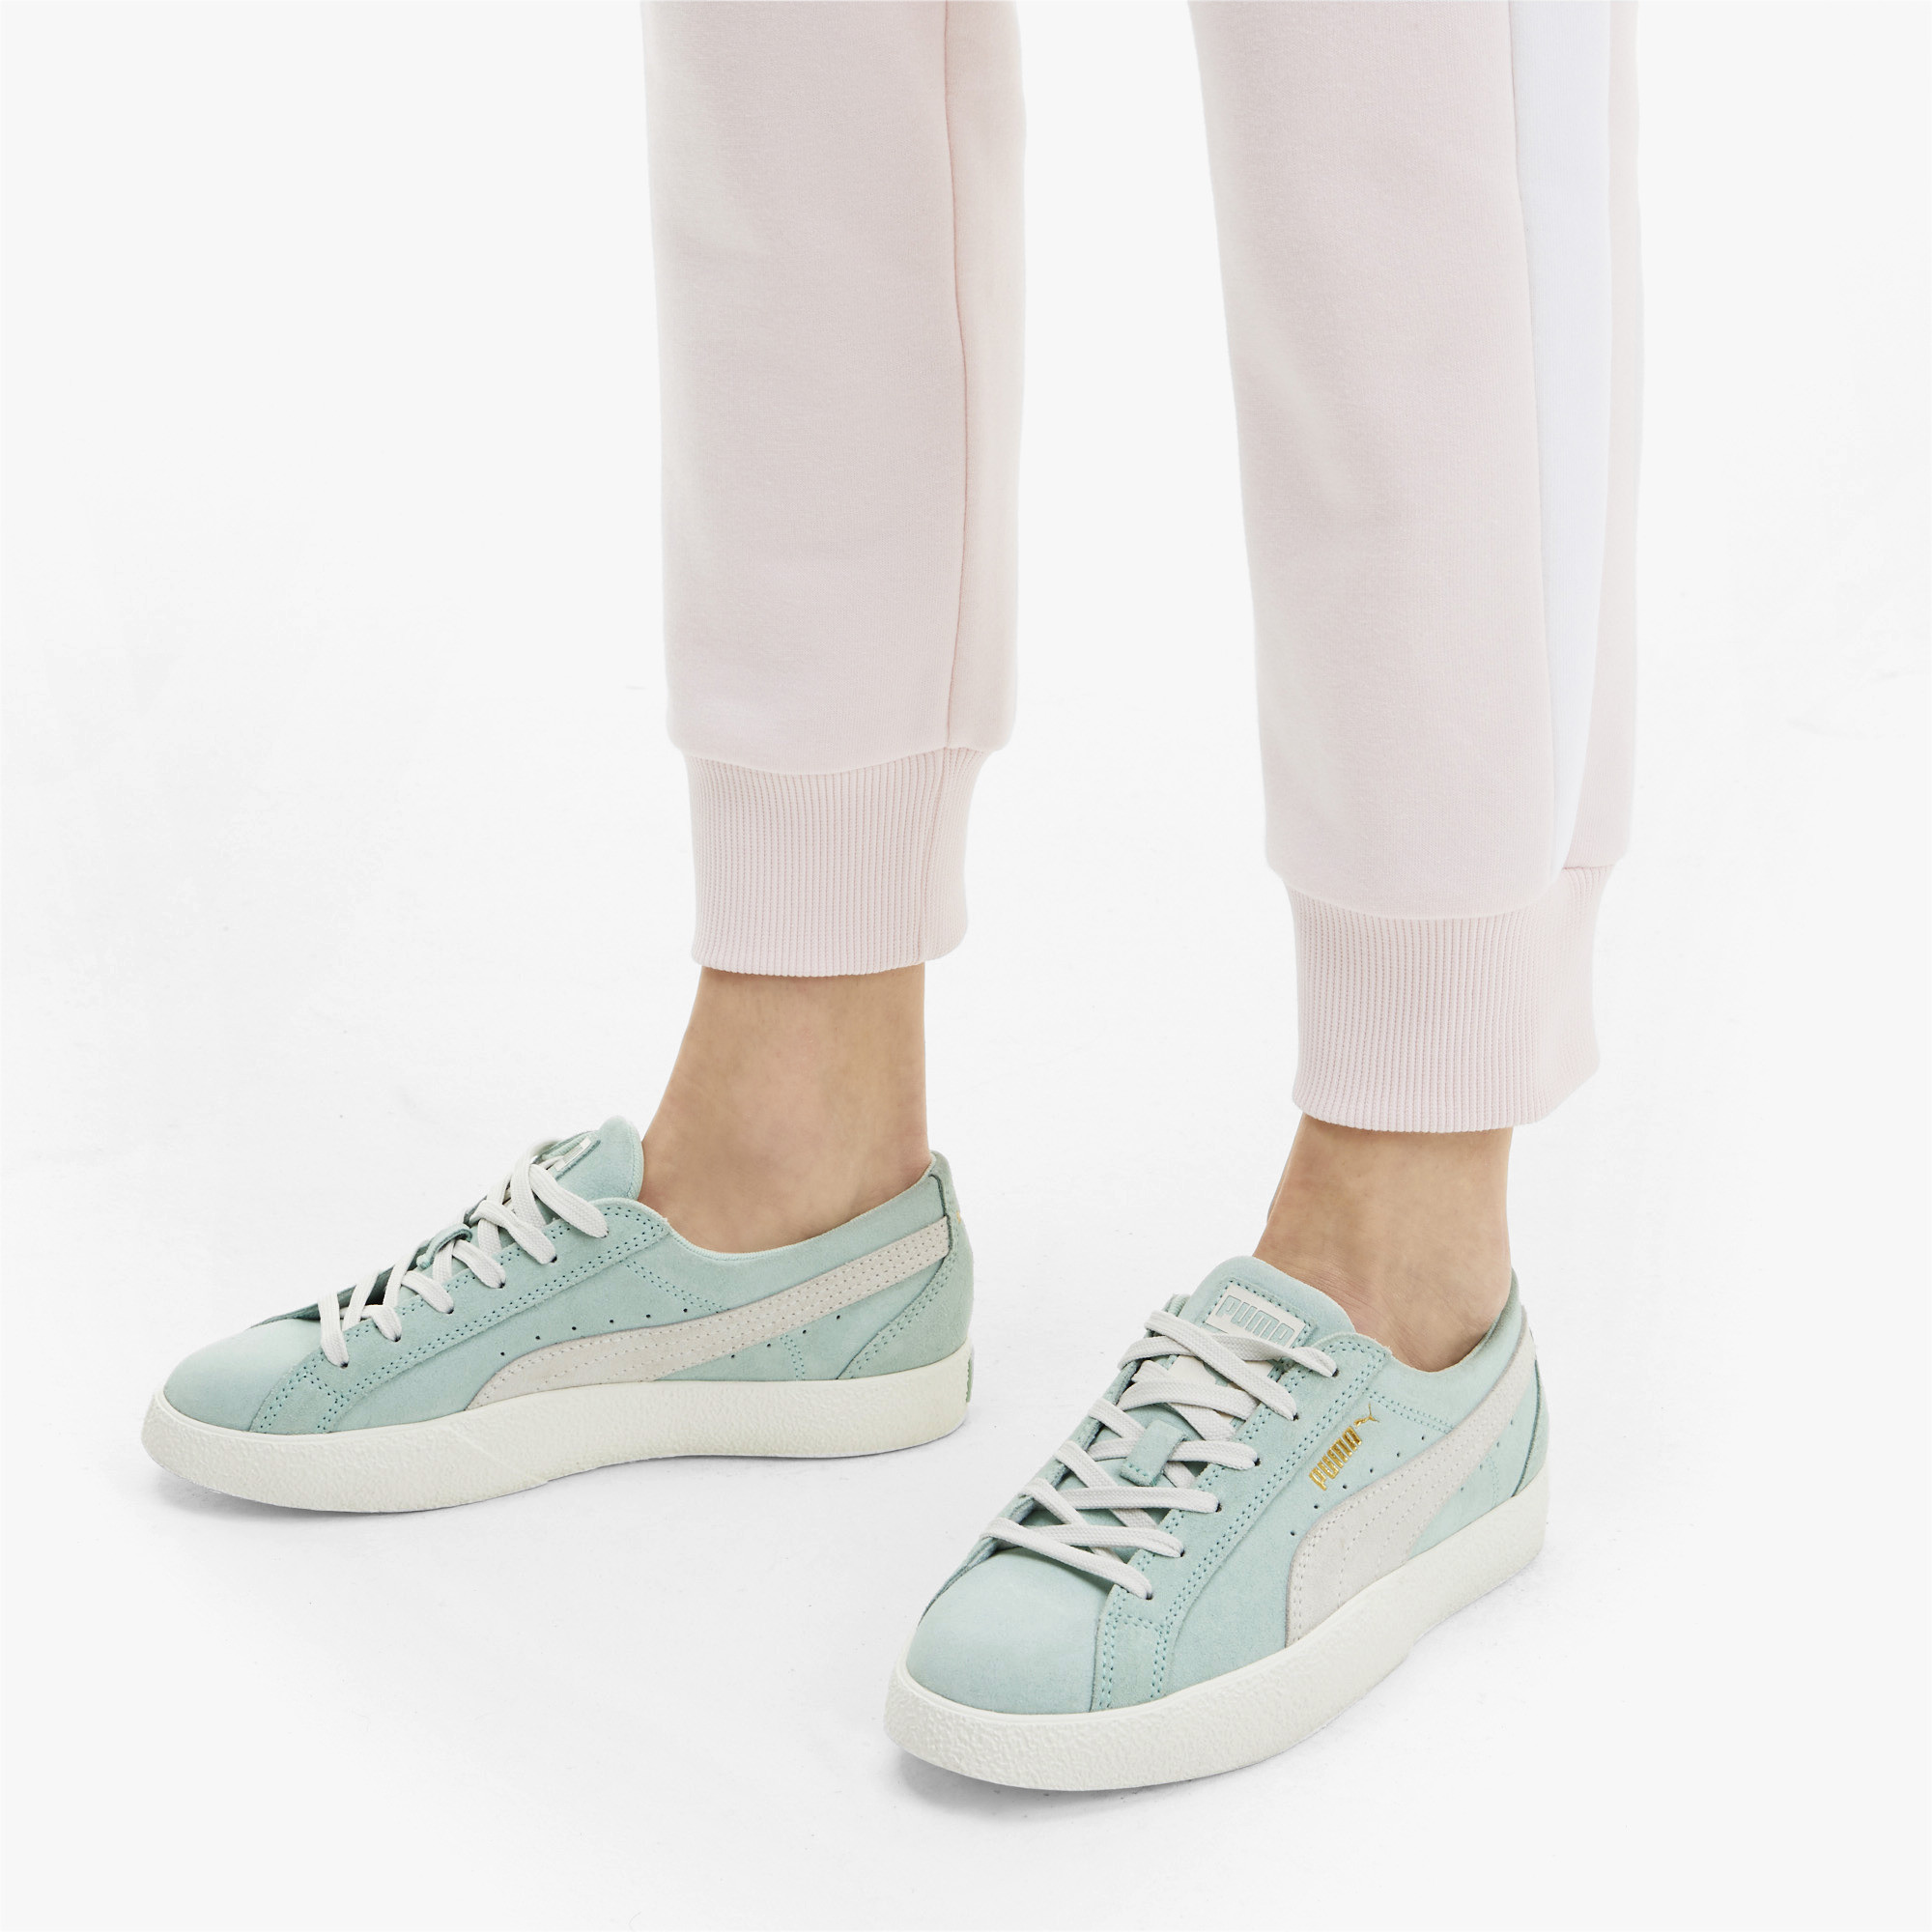 PUMA-Women-039-s-Love-Suede-Sneakers thumbnail 12